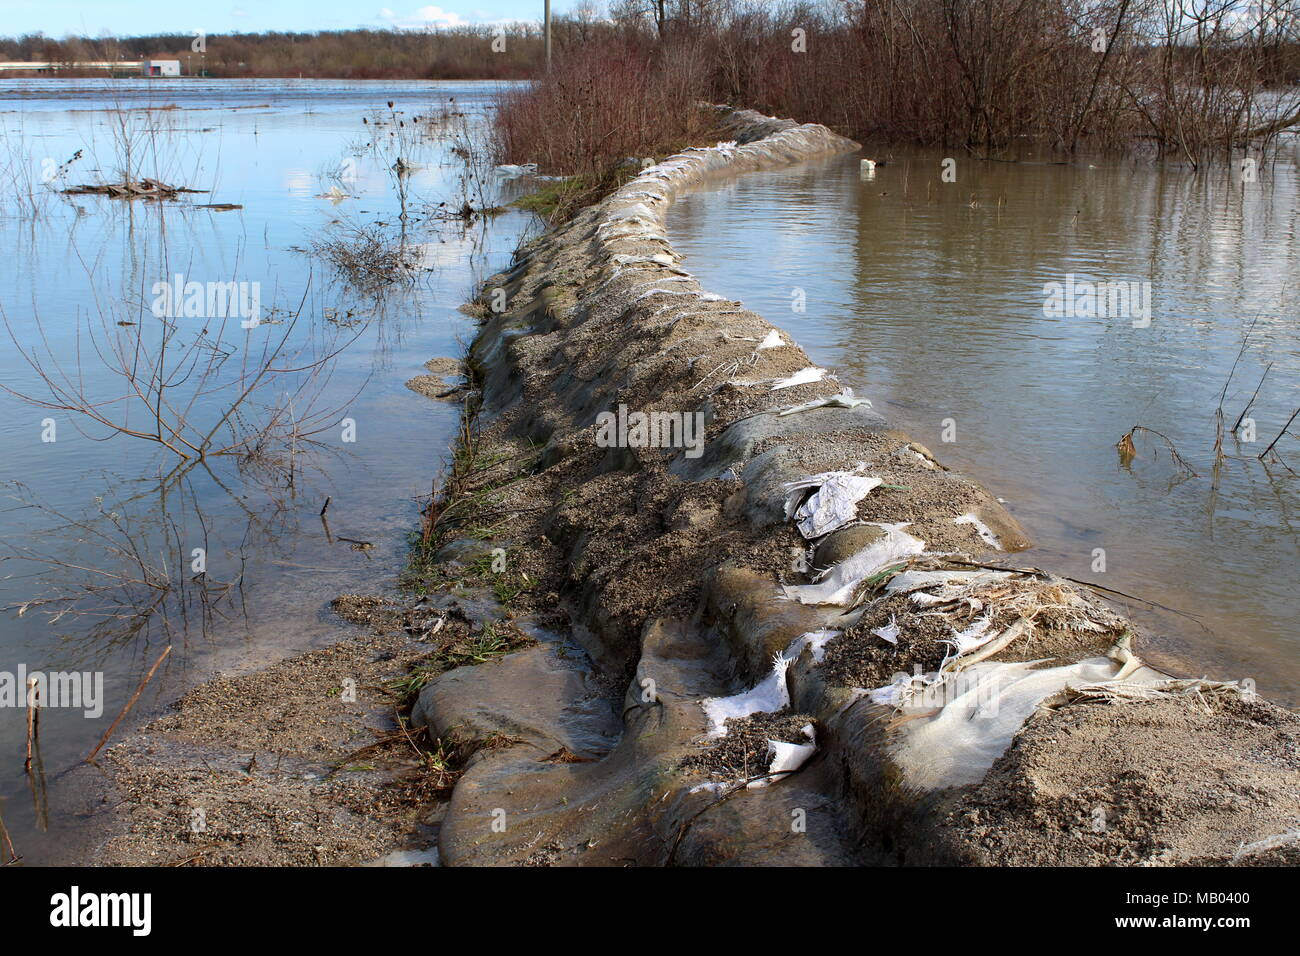 Old sandbags flood protection with destroyed sandbags holding back river during flood with bridge, trees and branches in background Stock Photo